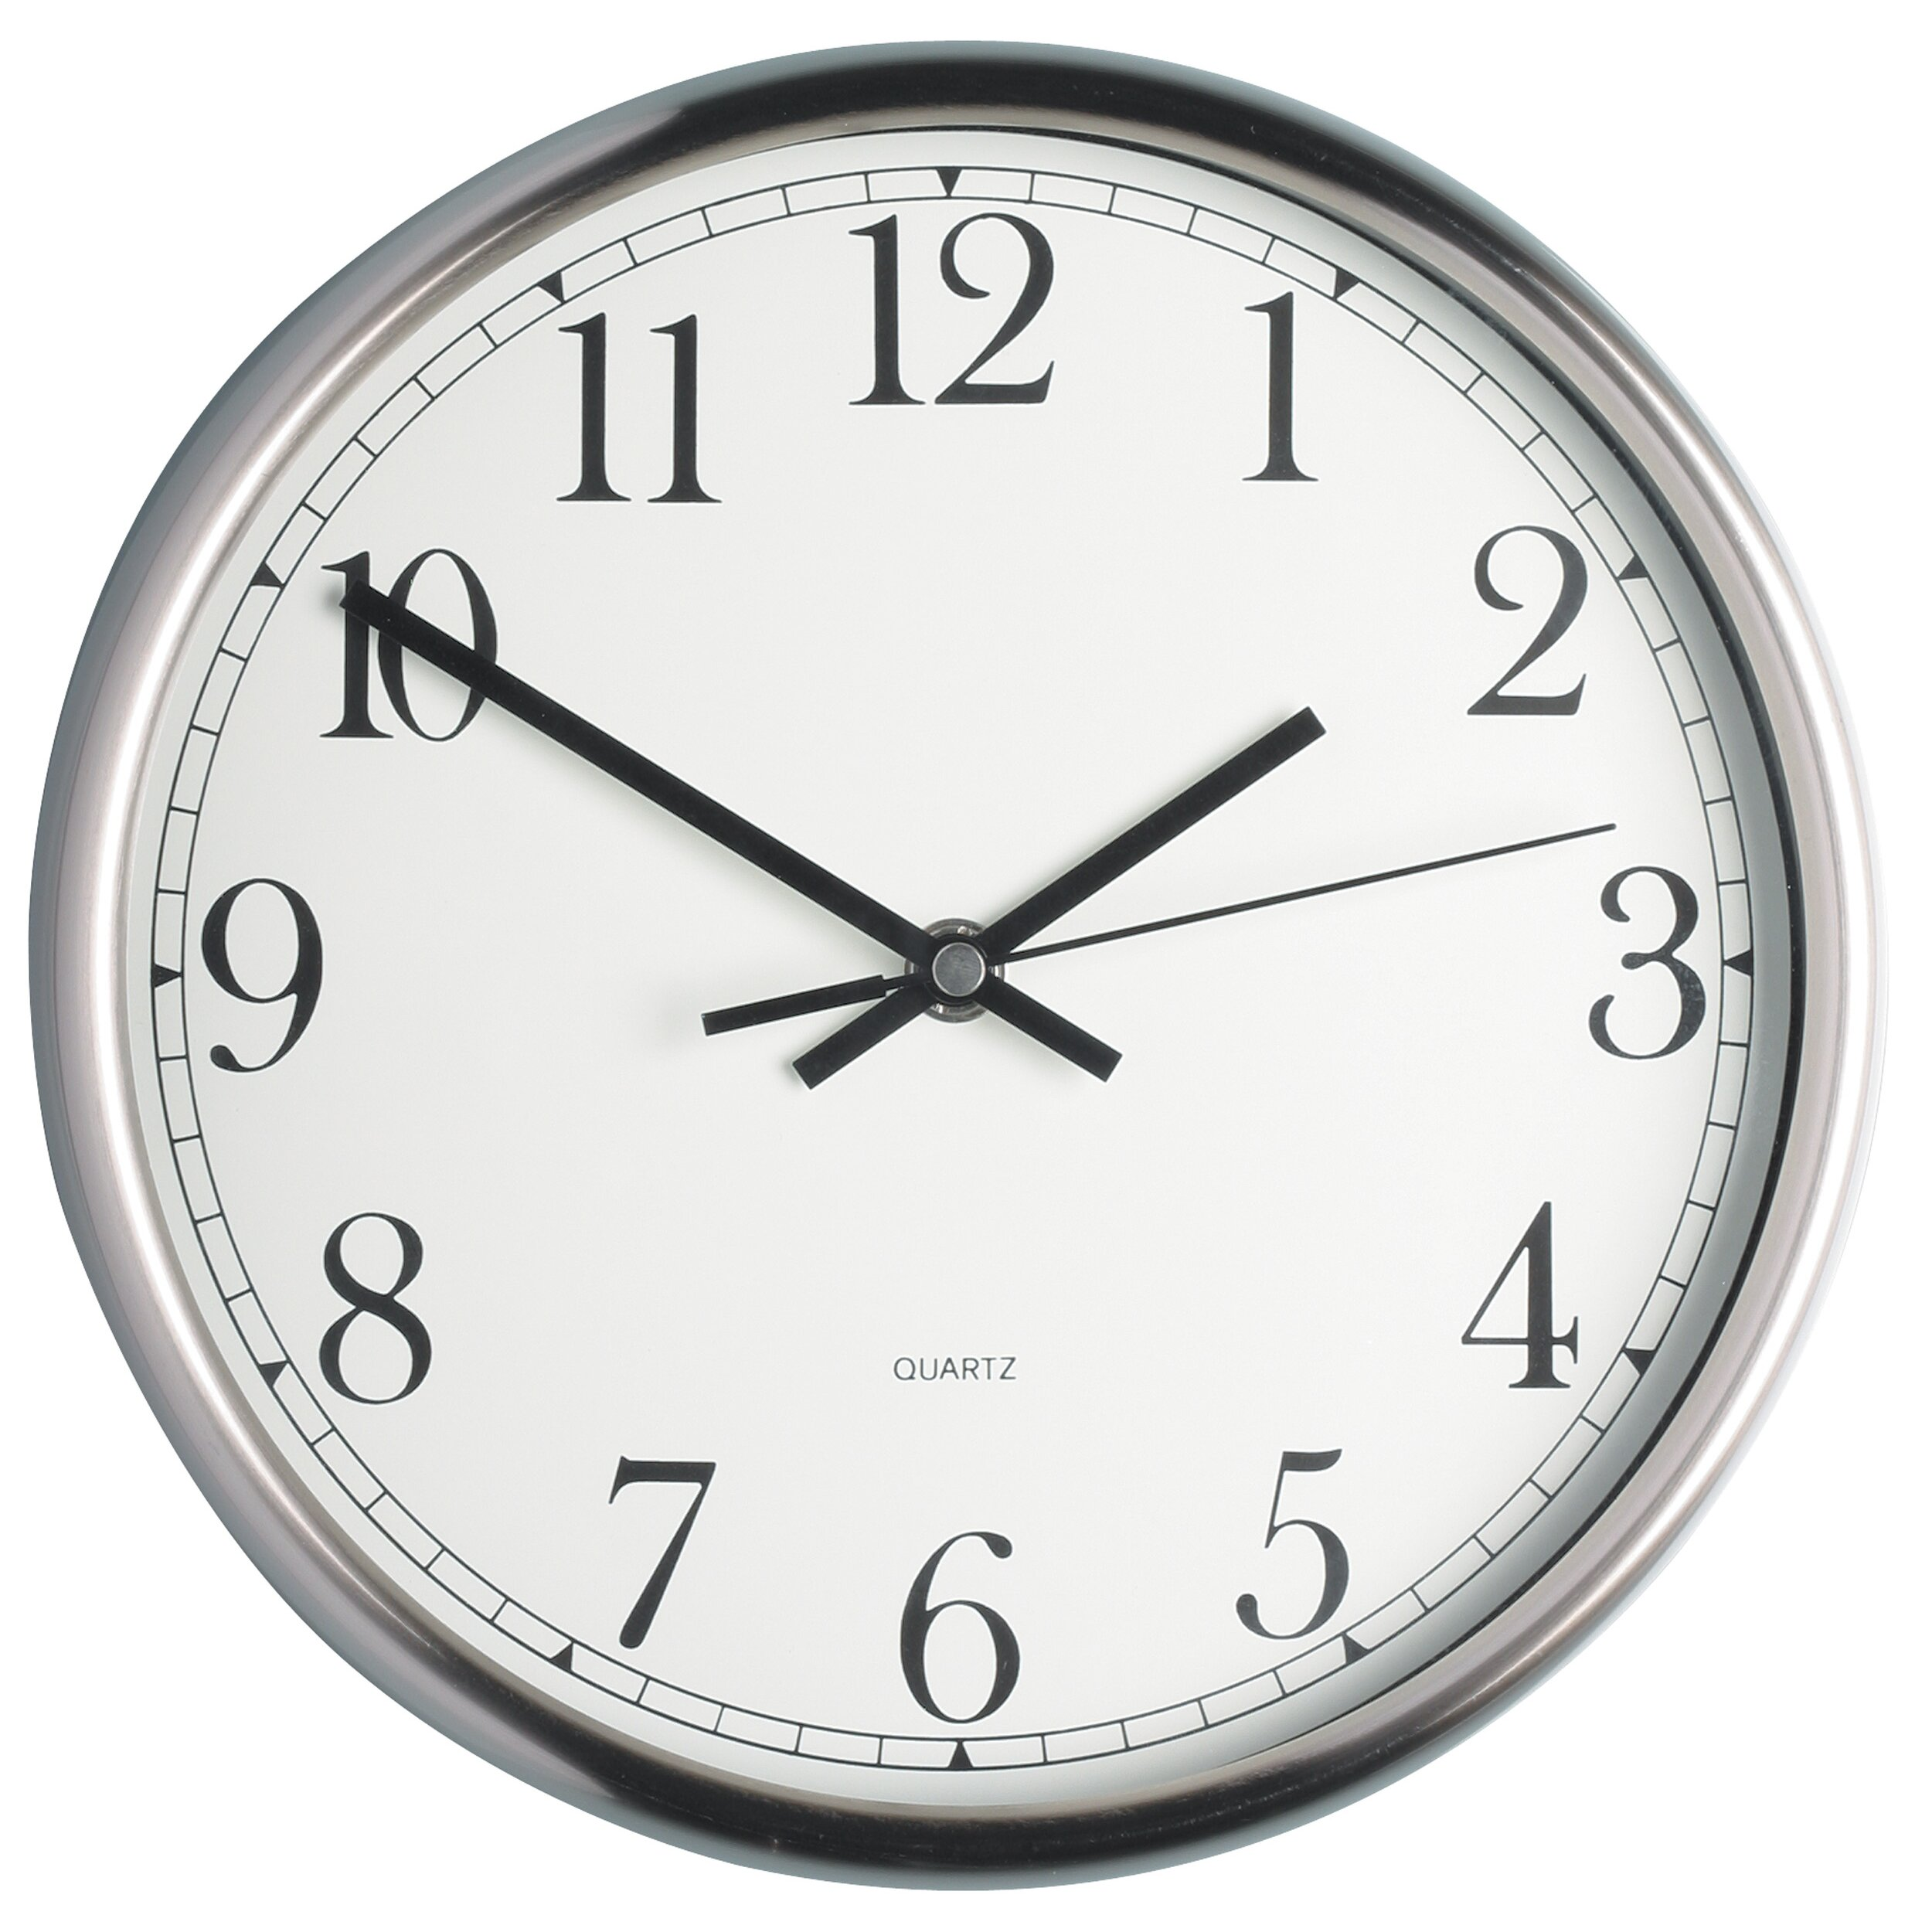 kitchen craft 25cm stainless steel wall clock reviews. Black Bedroom Furniture Sets. Home Design Ideas